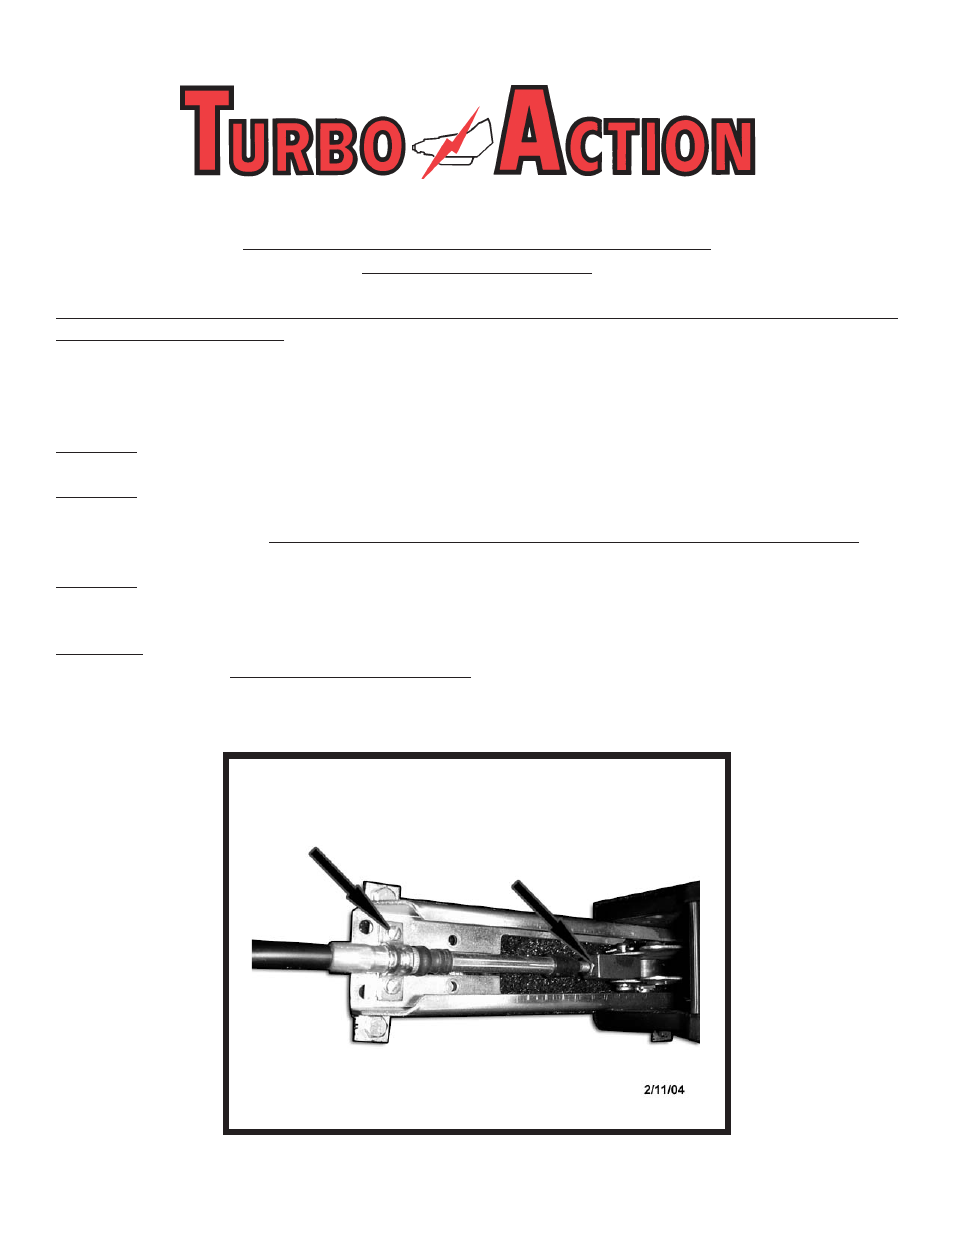 Turbo Action Cheetah Scs Shifter Cable Adjustment User Manual 2 Pages